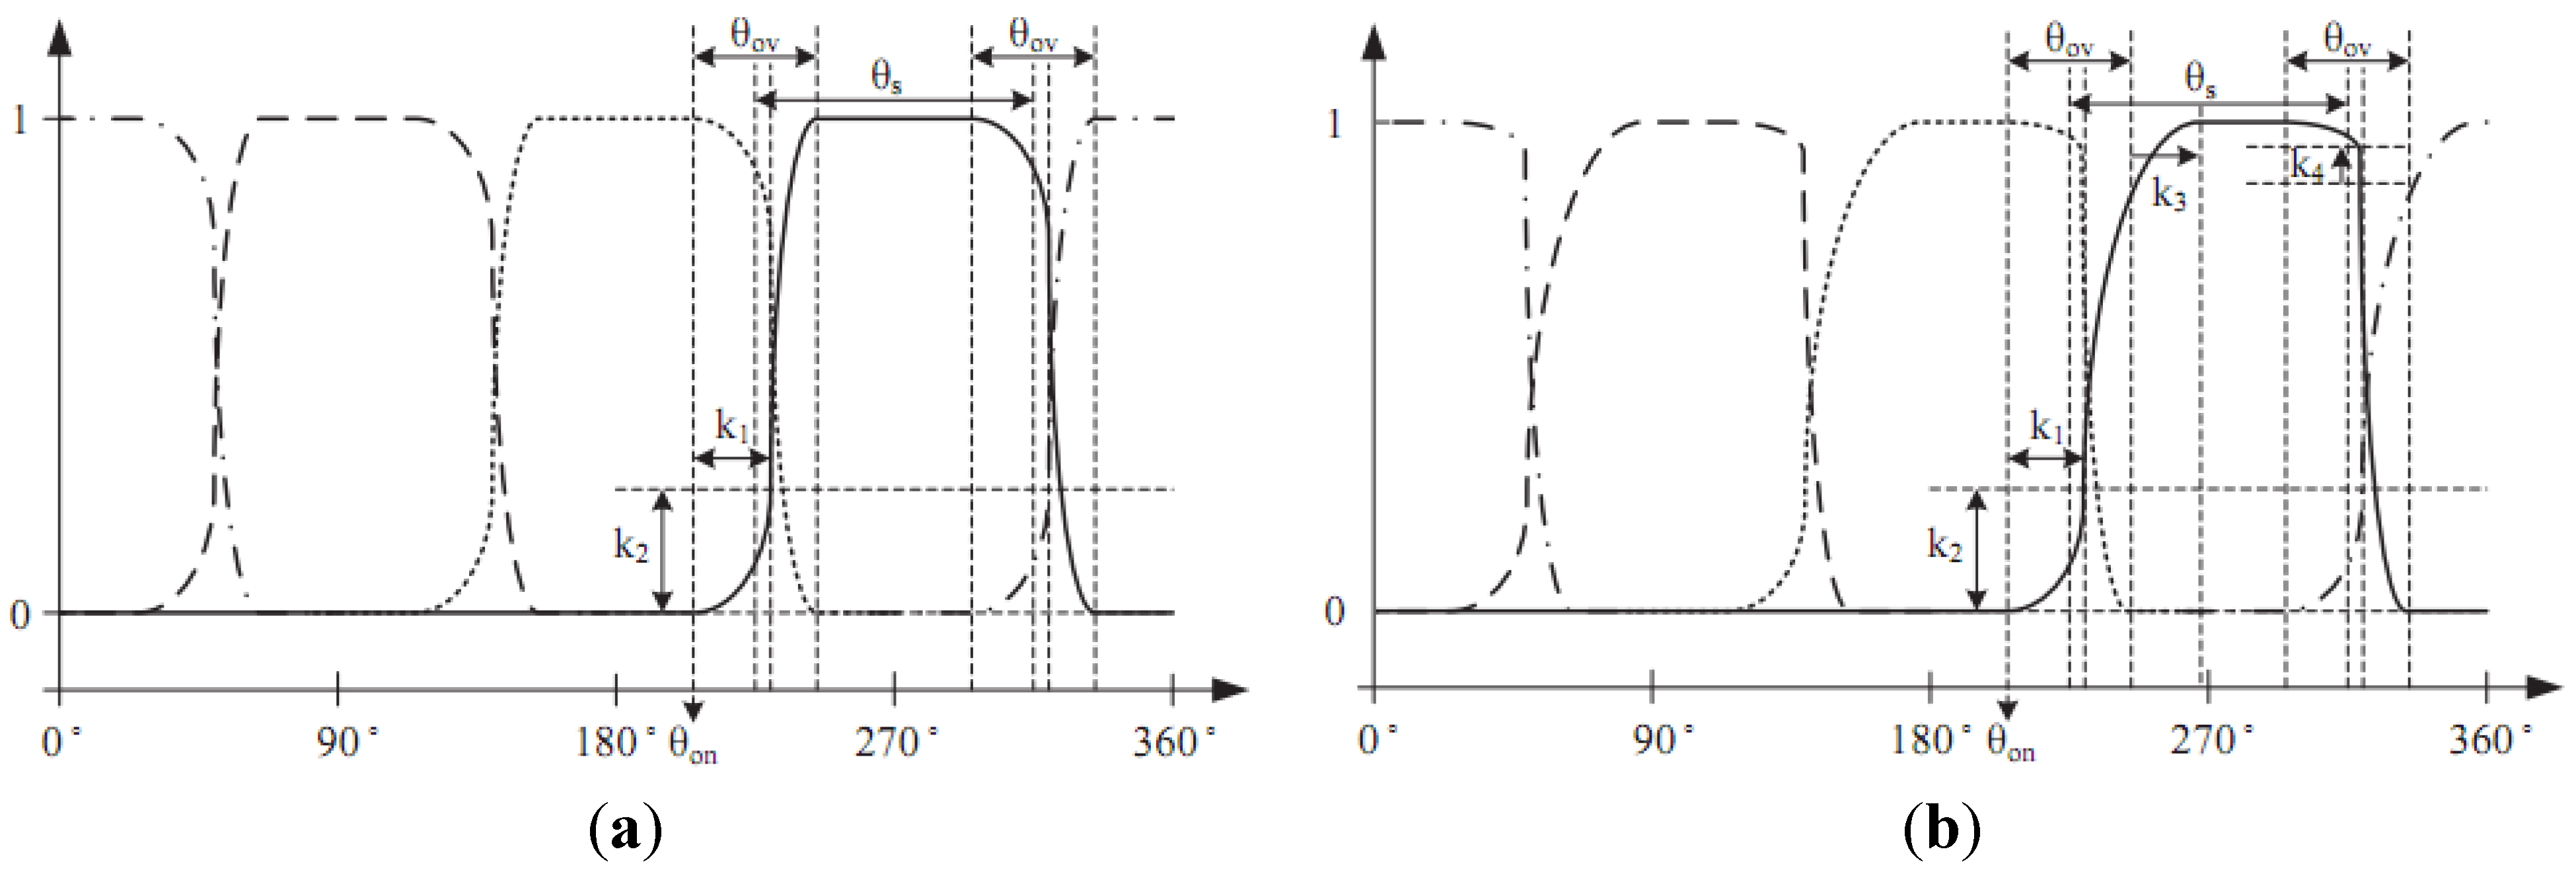 Energies | Free Full-Text | A Non-Unity Torque Sharing Function for